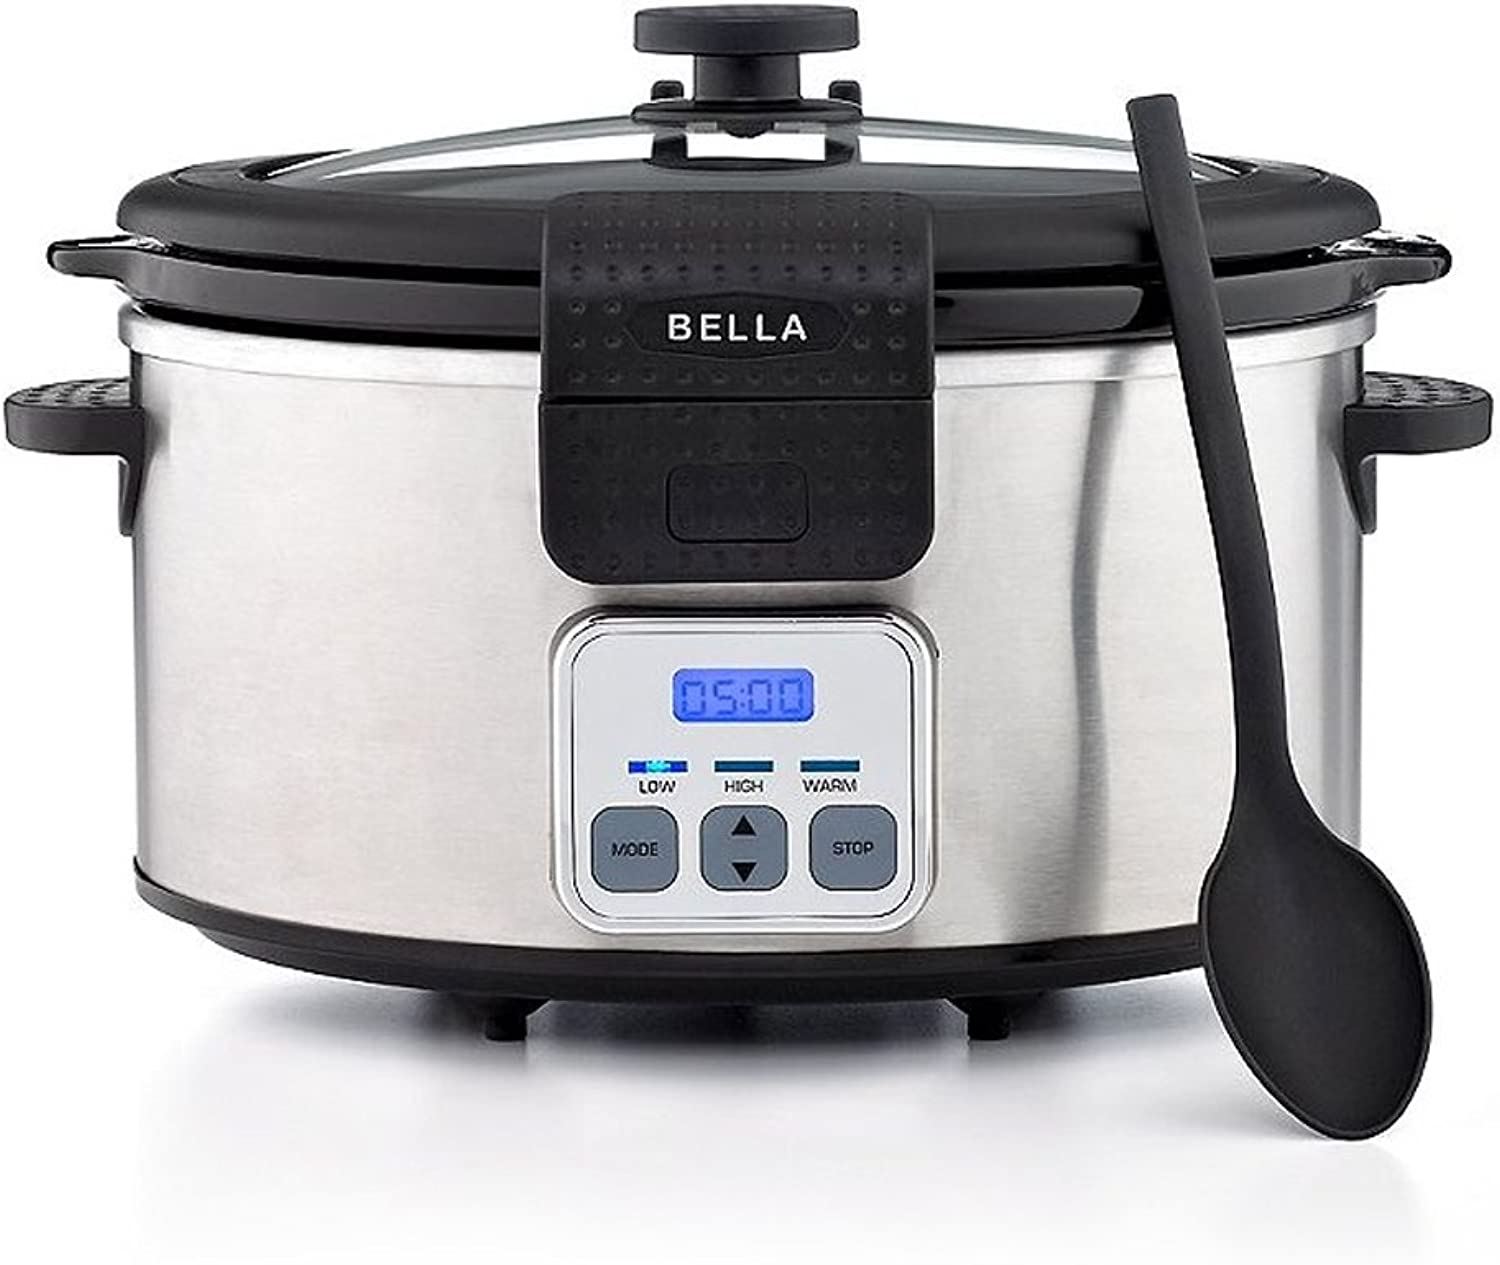 BELLA 6 Quart Programmable Locking Lid Slow Cooker, Stainless Steel